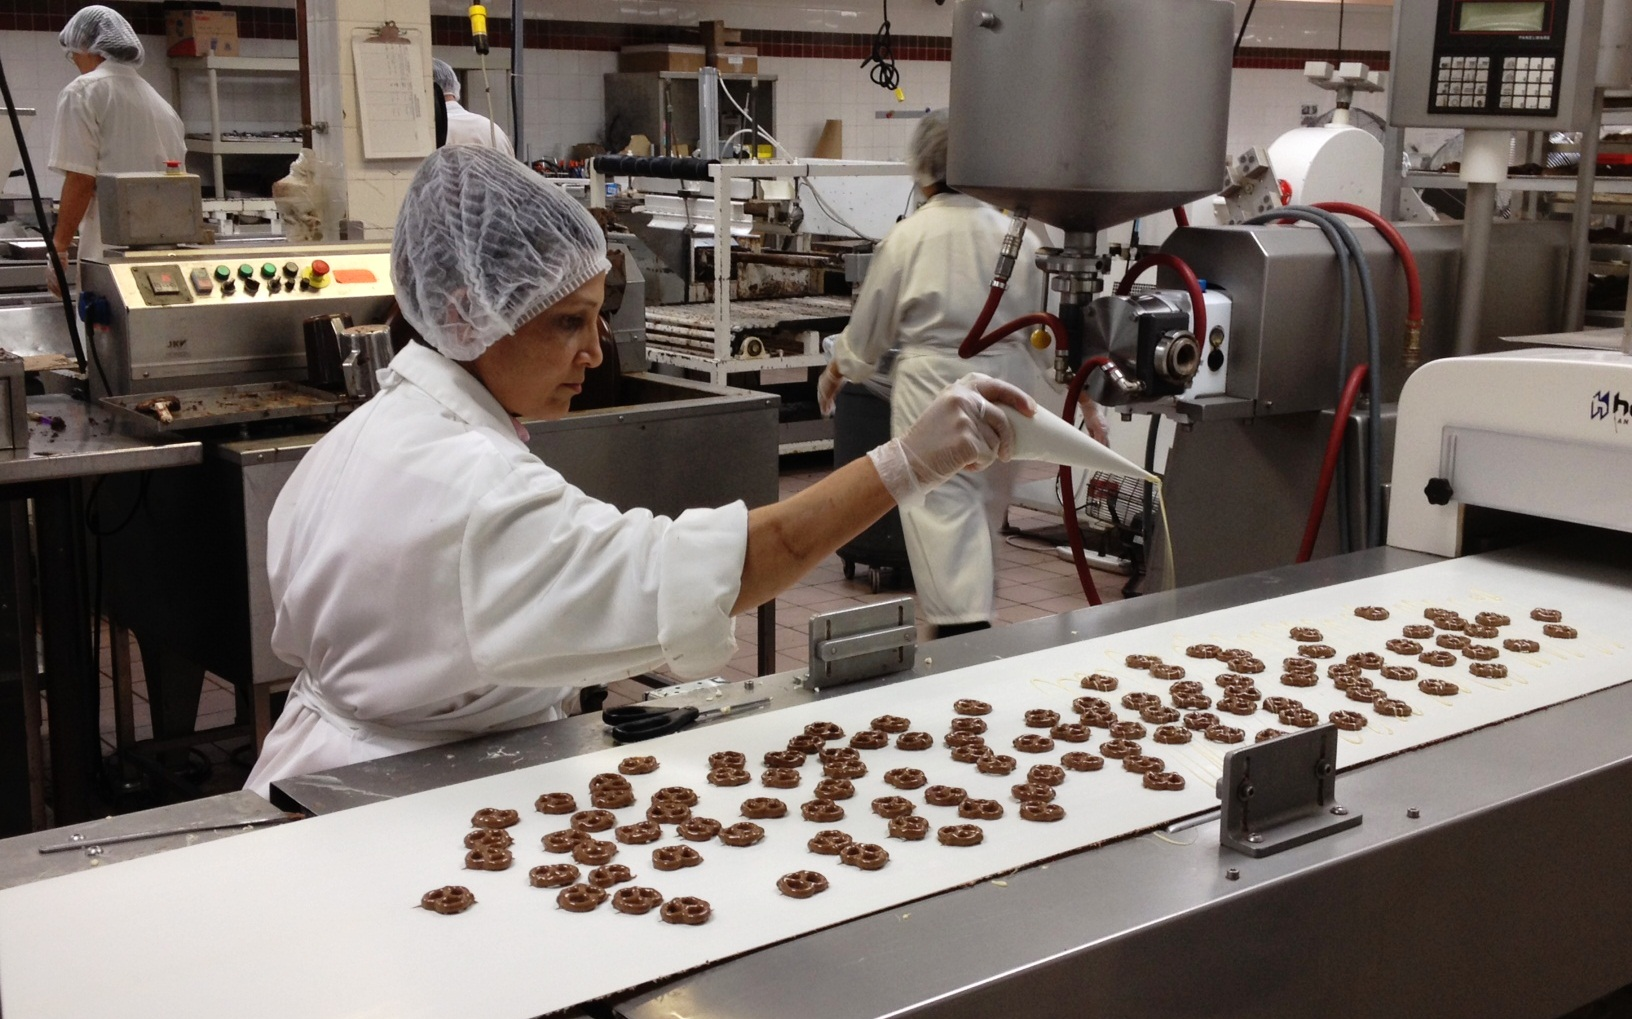 chocolate company Send the most indulgent gourmet chocolates, truffles, holiday gifts and more delivering personalized chocolate gifts & baskets for over 80 years.